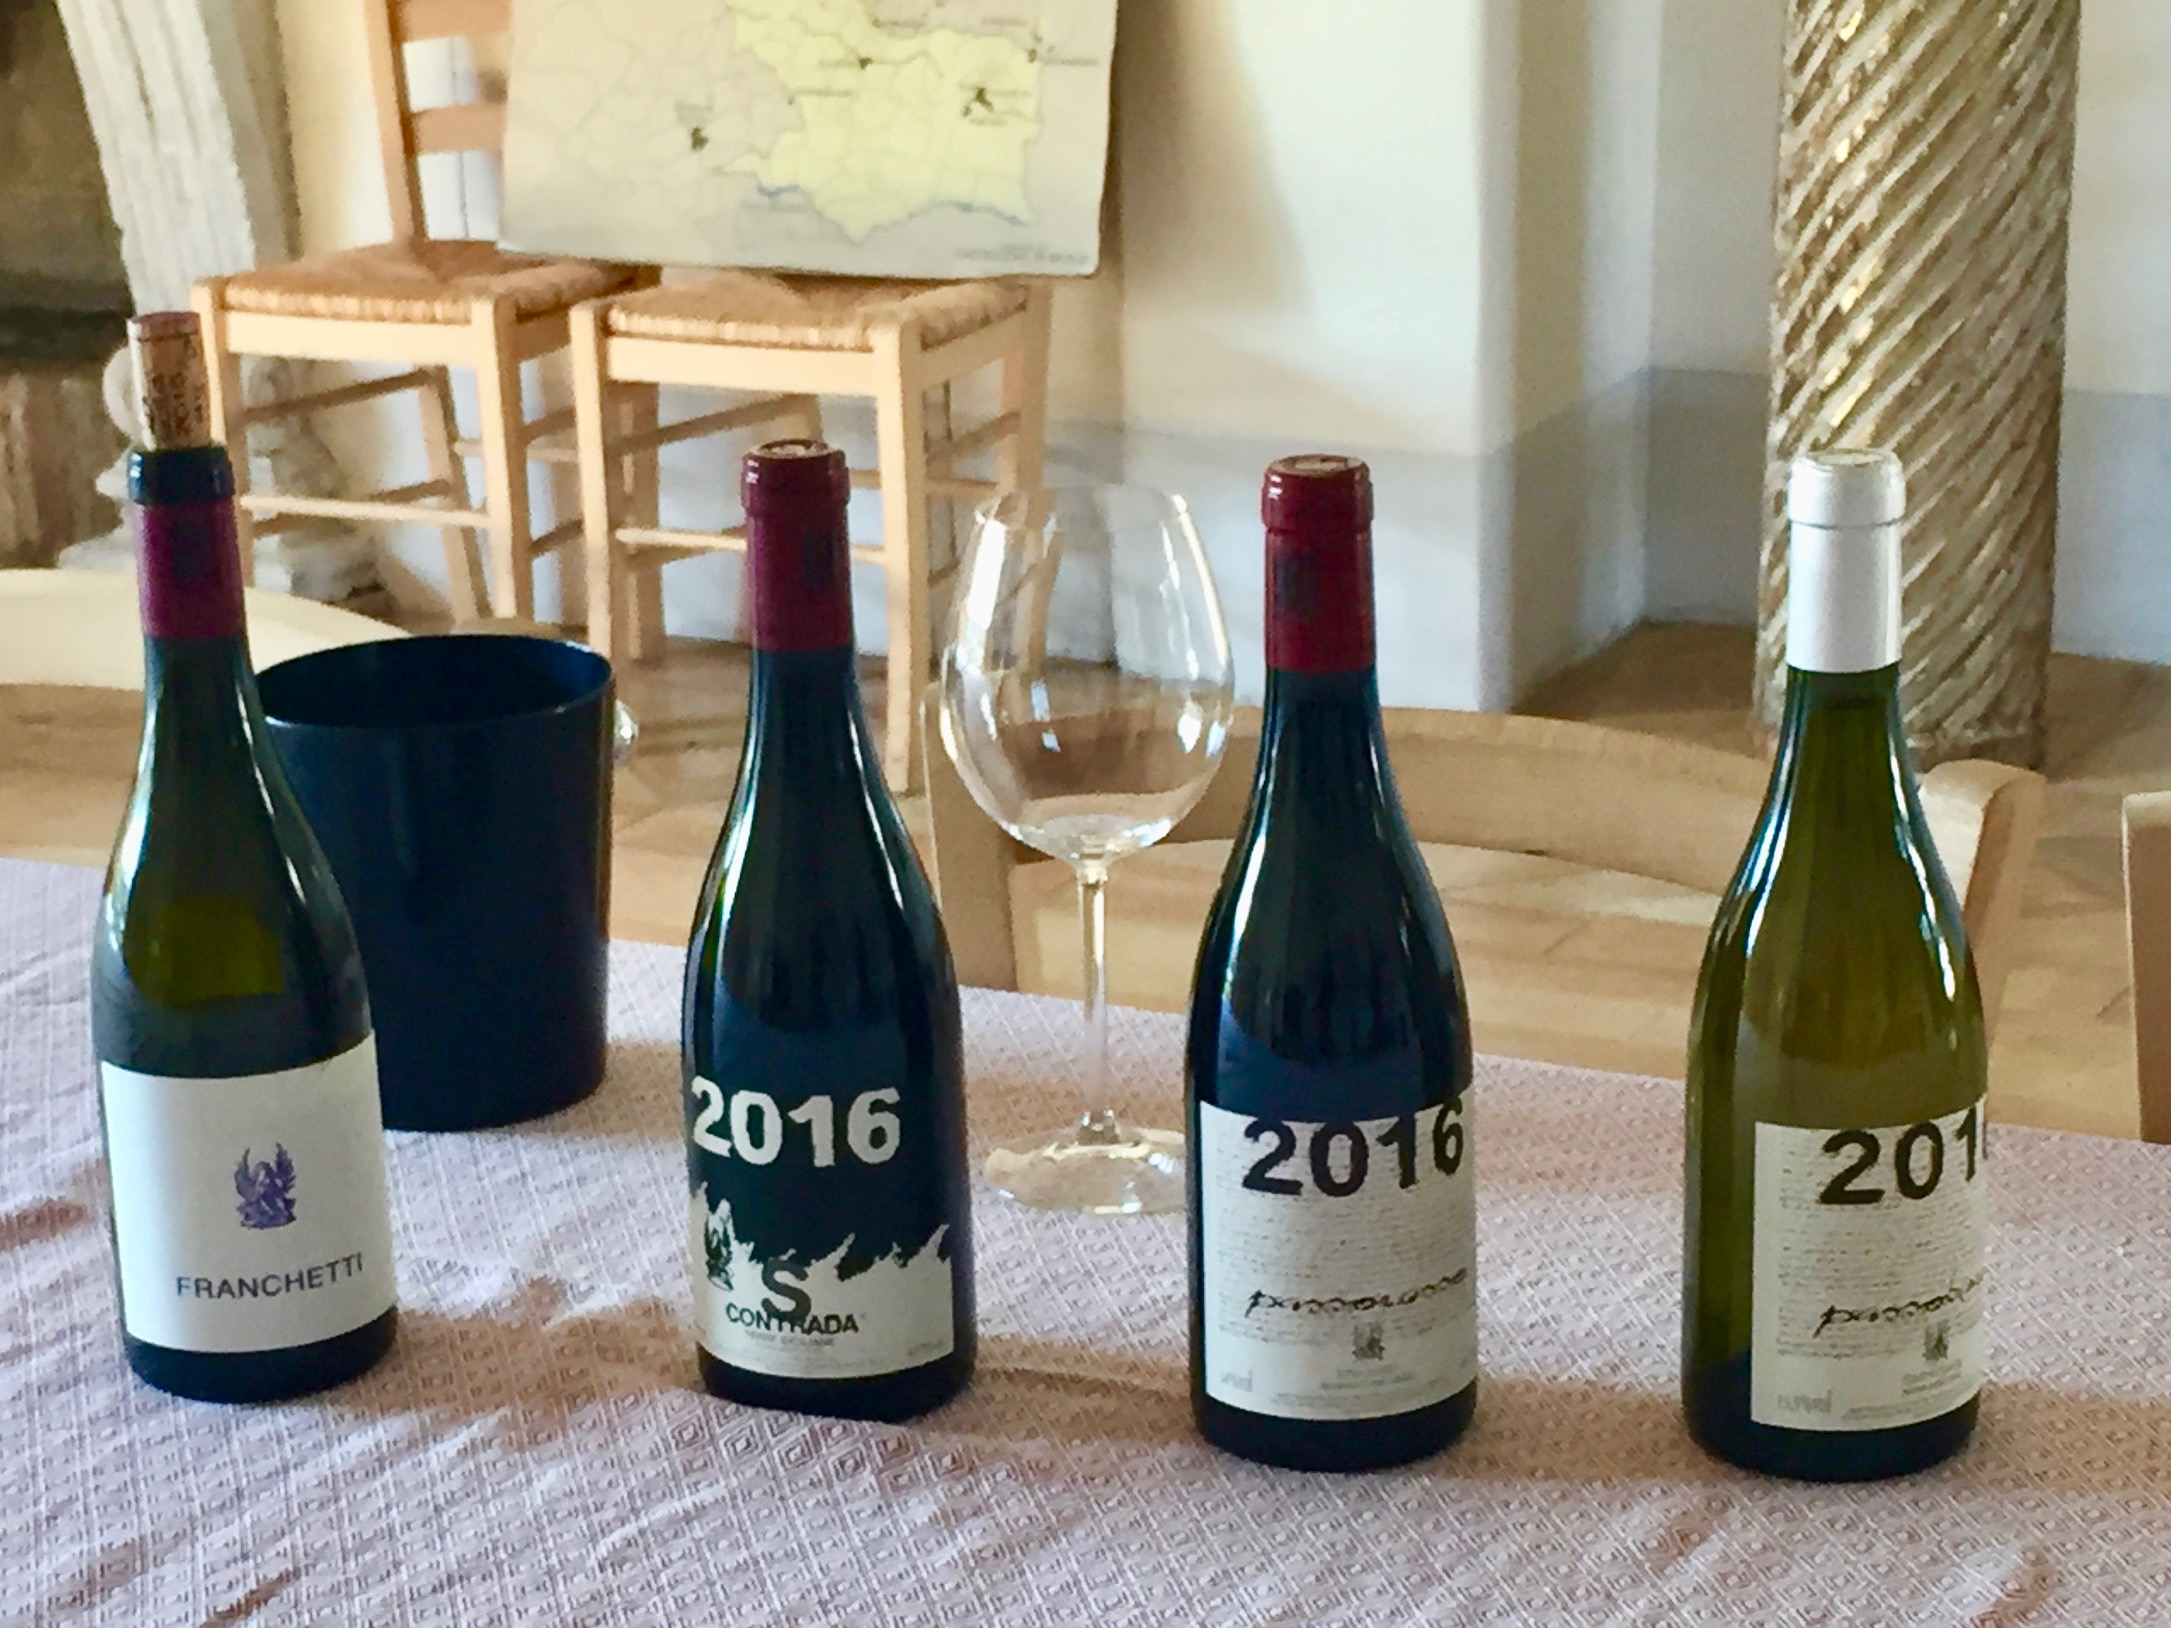 The wines from our tasting at Franchetti on Etna, Sicily